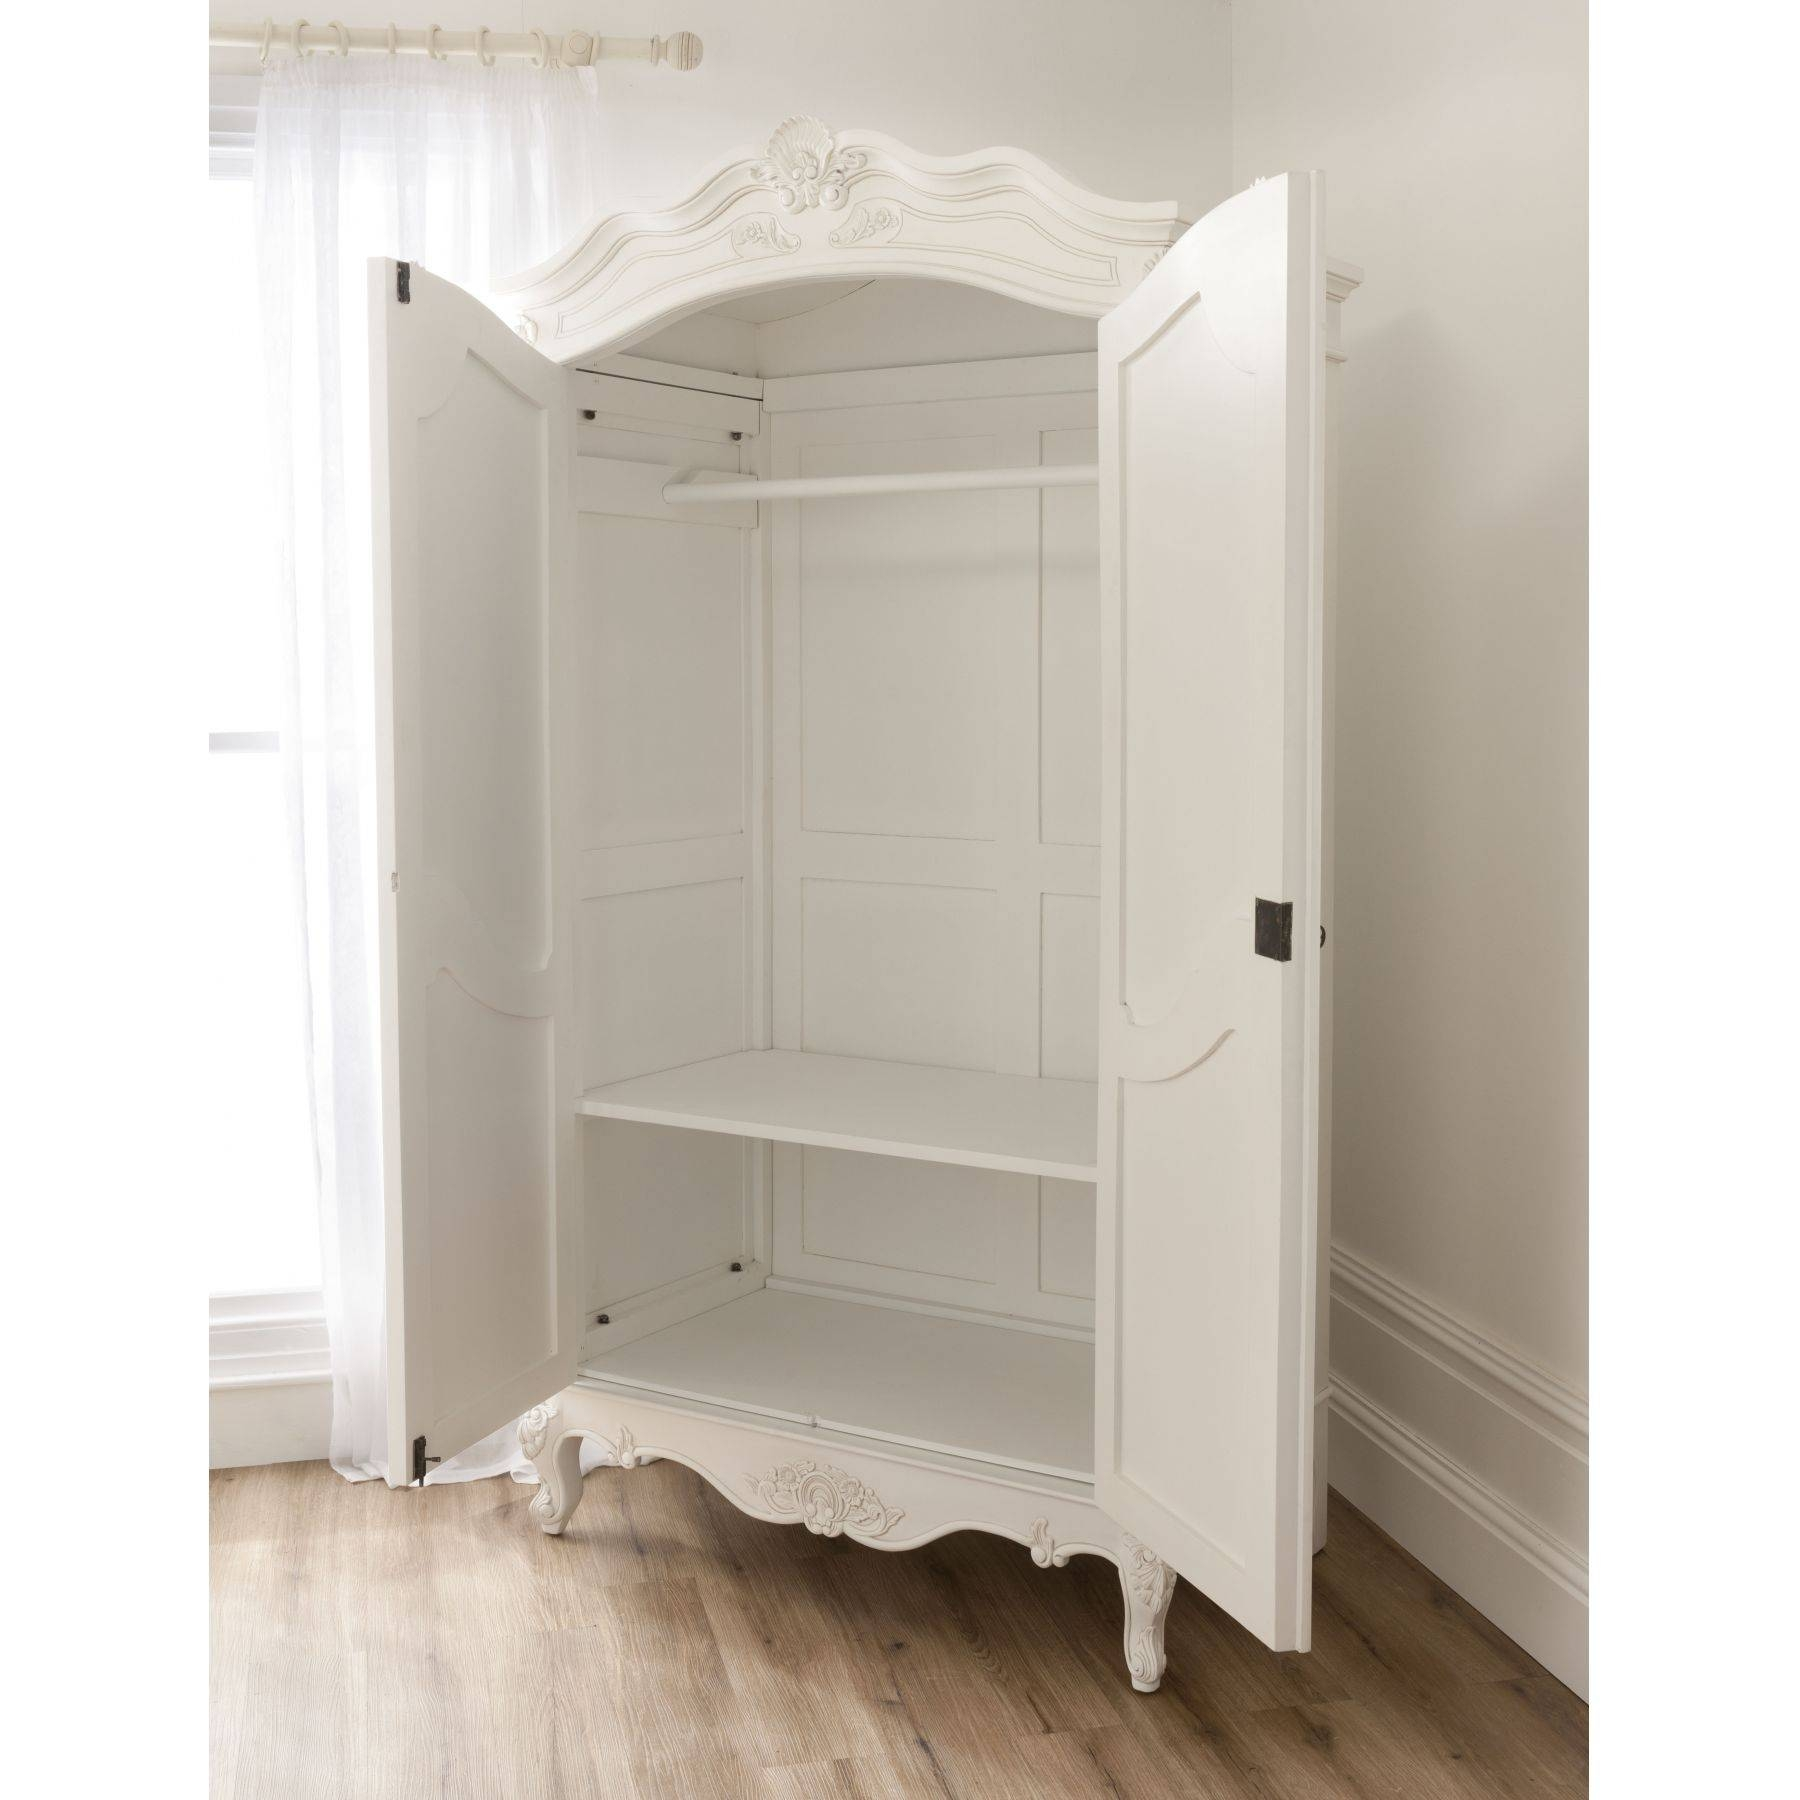 Baroque Antique French Wardrobe Is Available Online From regarding White French Style Wardrobes (Image 3 of 15)